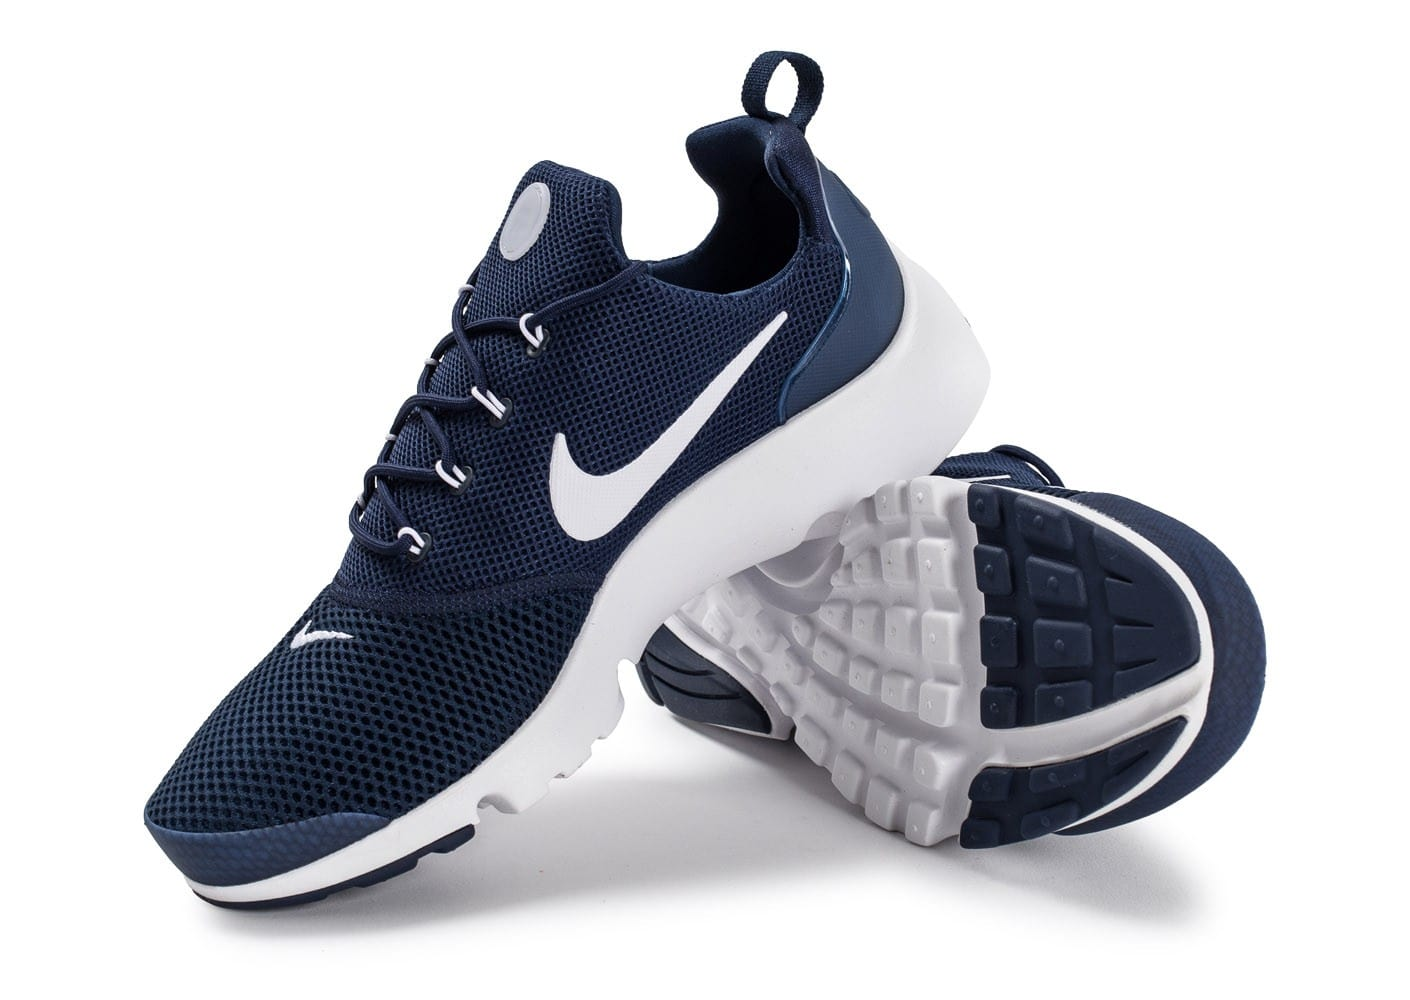 Marine Nike Chaussures Homme Presto Chausport Fly Baskets Bleu Y7gb6vfy